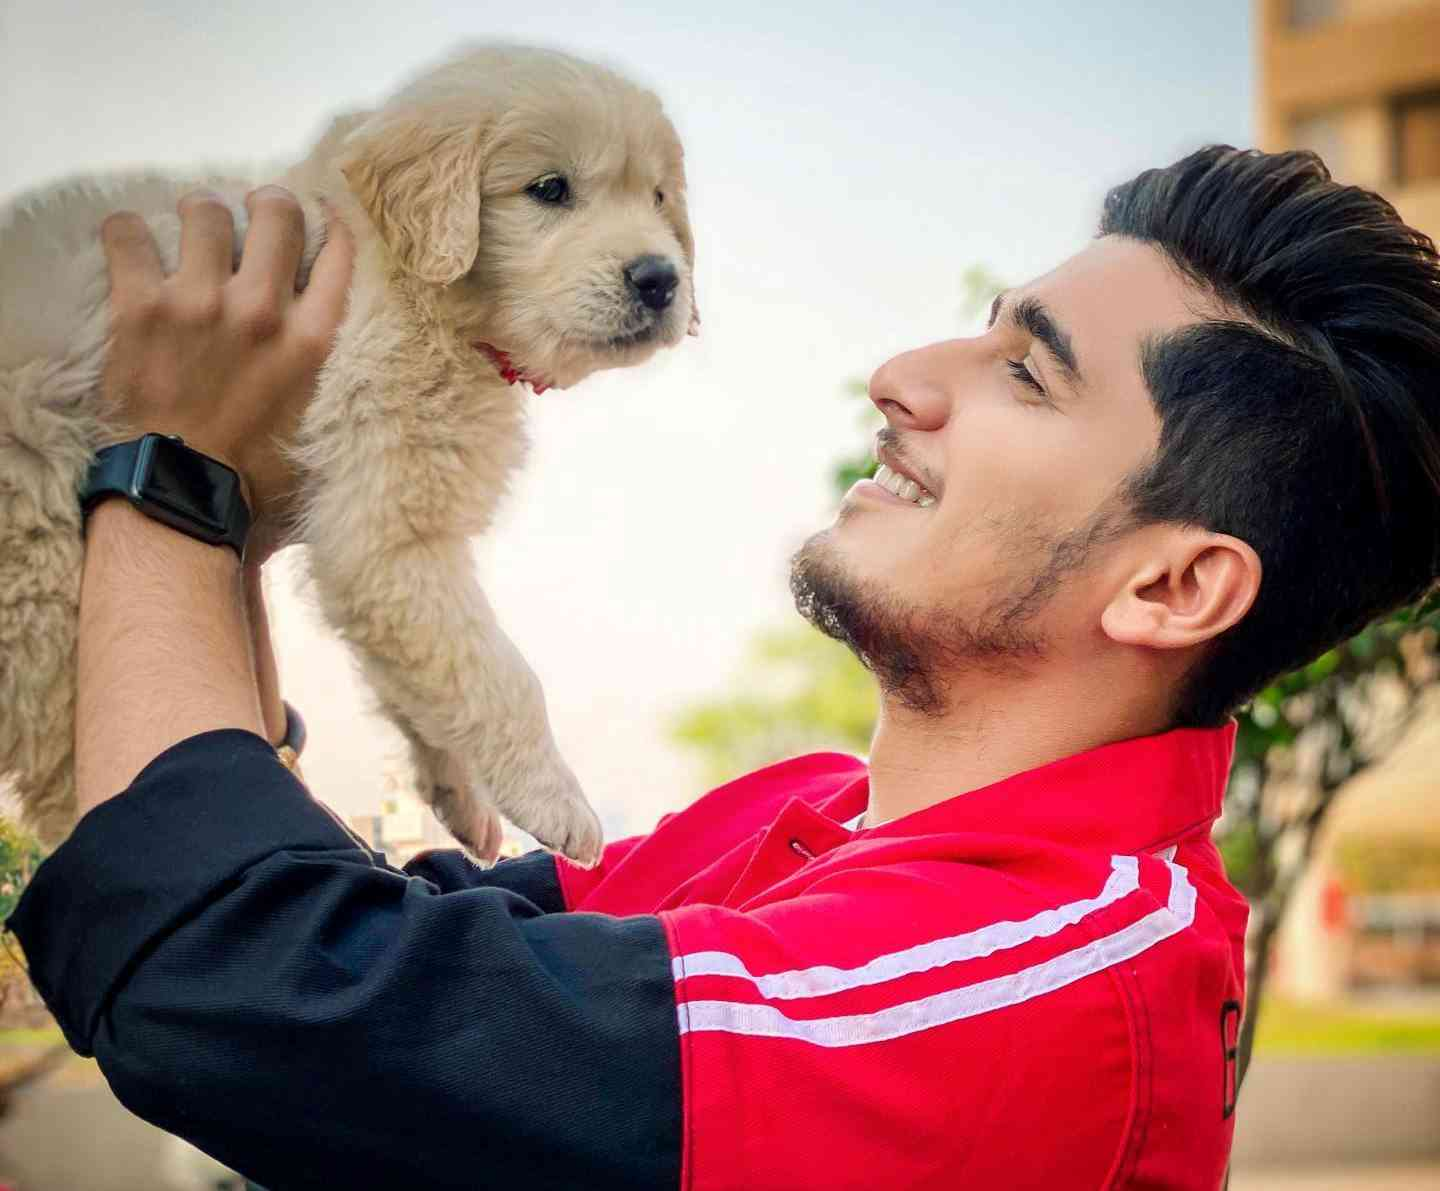 Bhavin Bhanushali with his pet dog